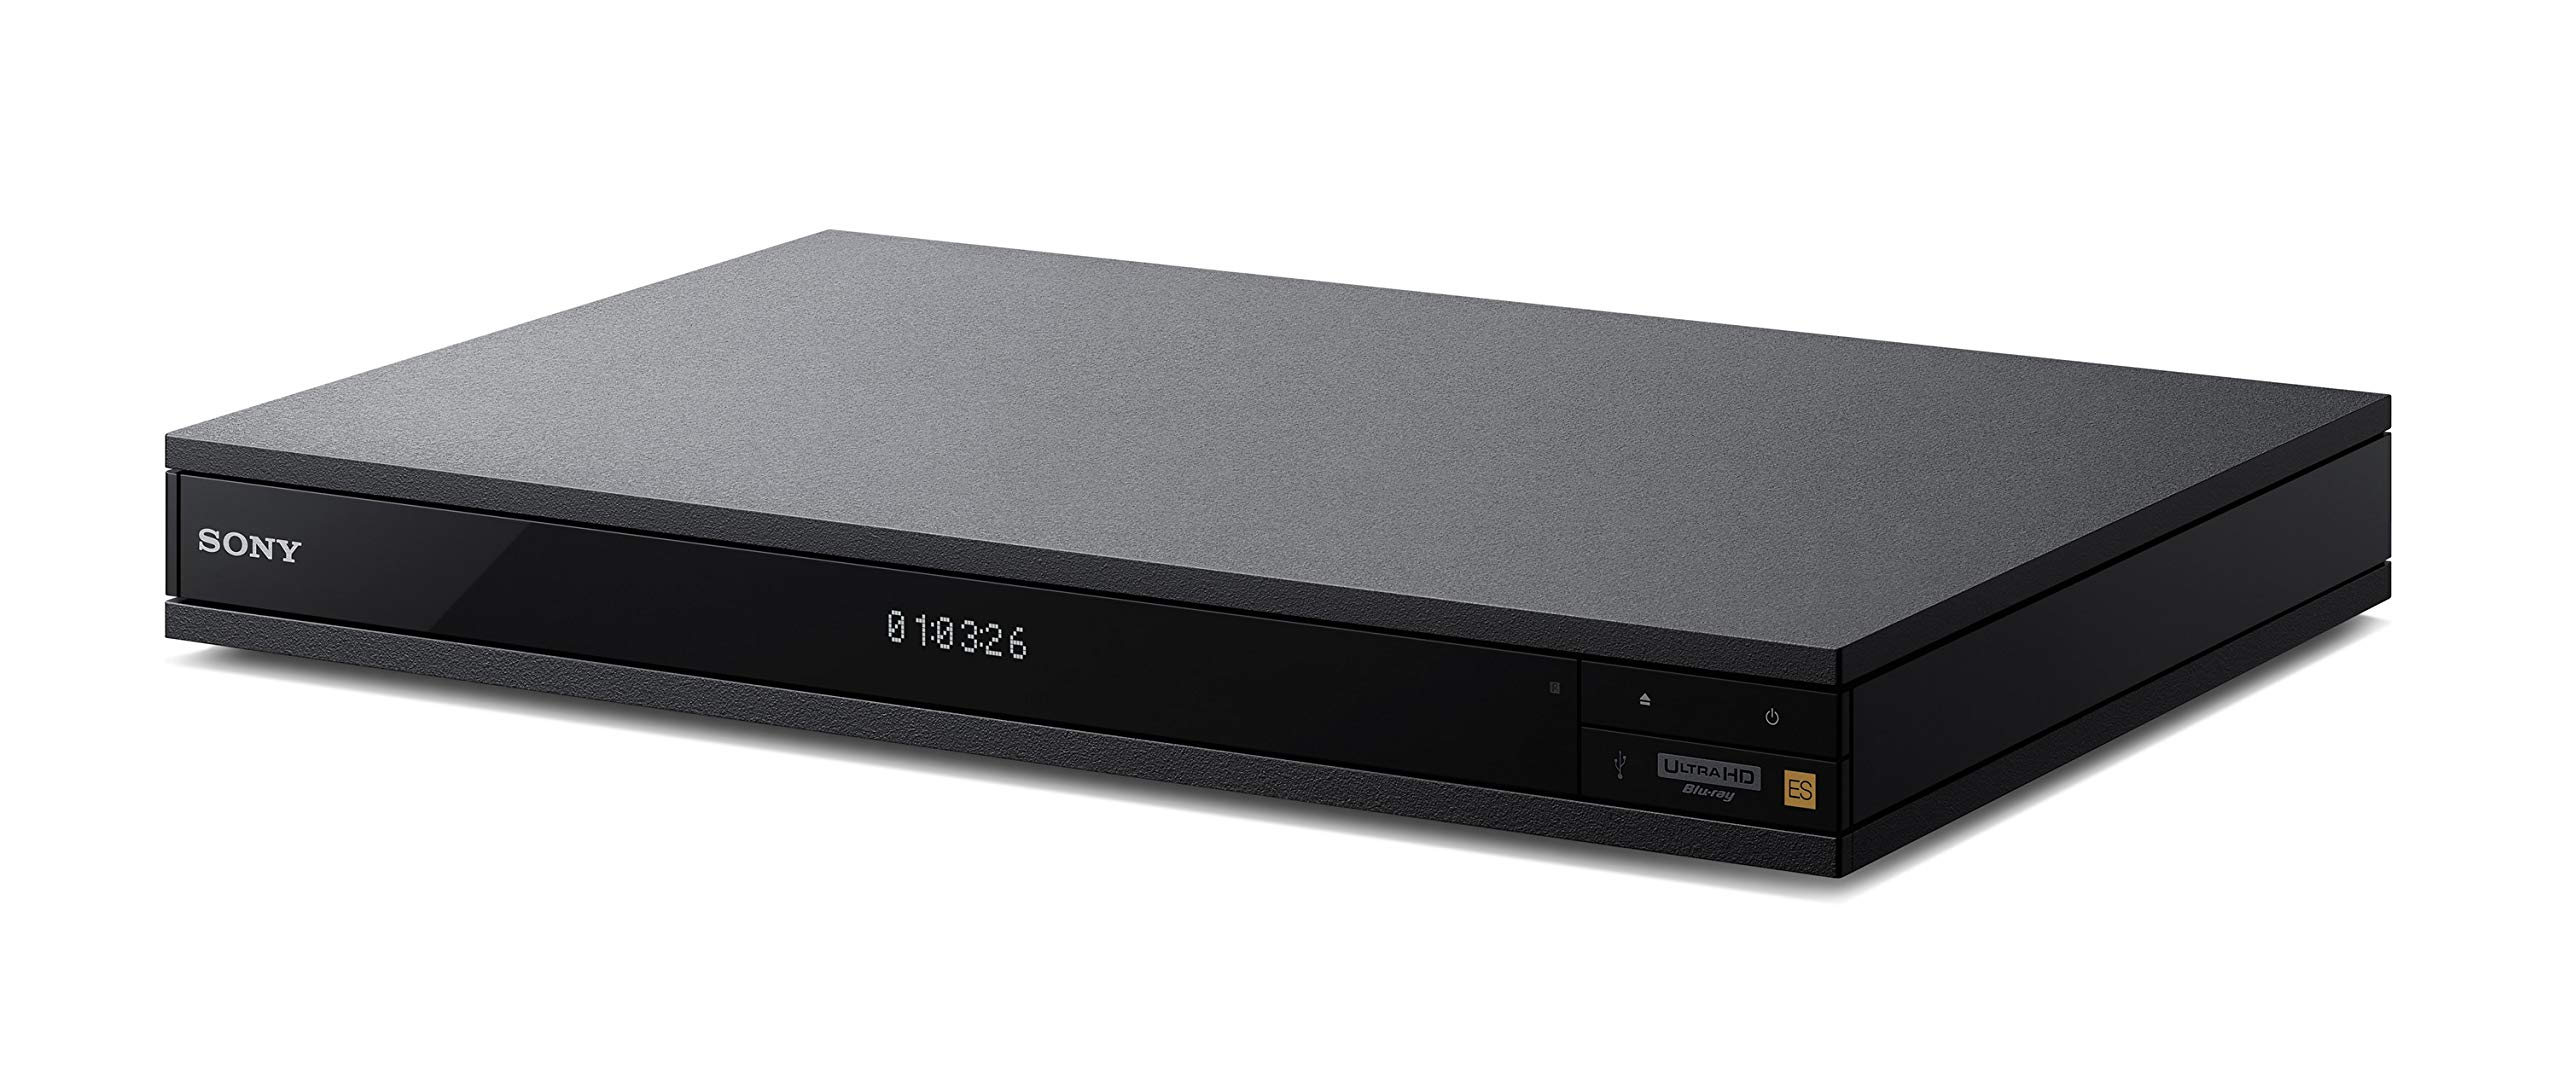 Sony UBP-X1100ES 4K UHD Blu-ray Player with HDR